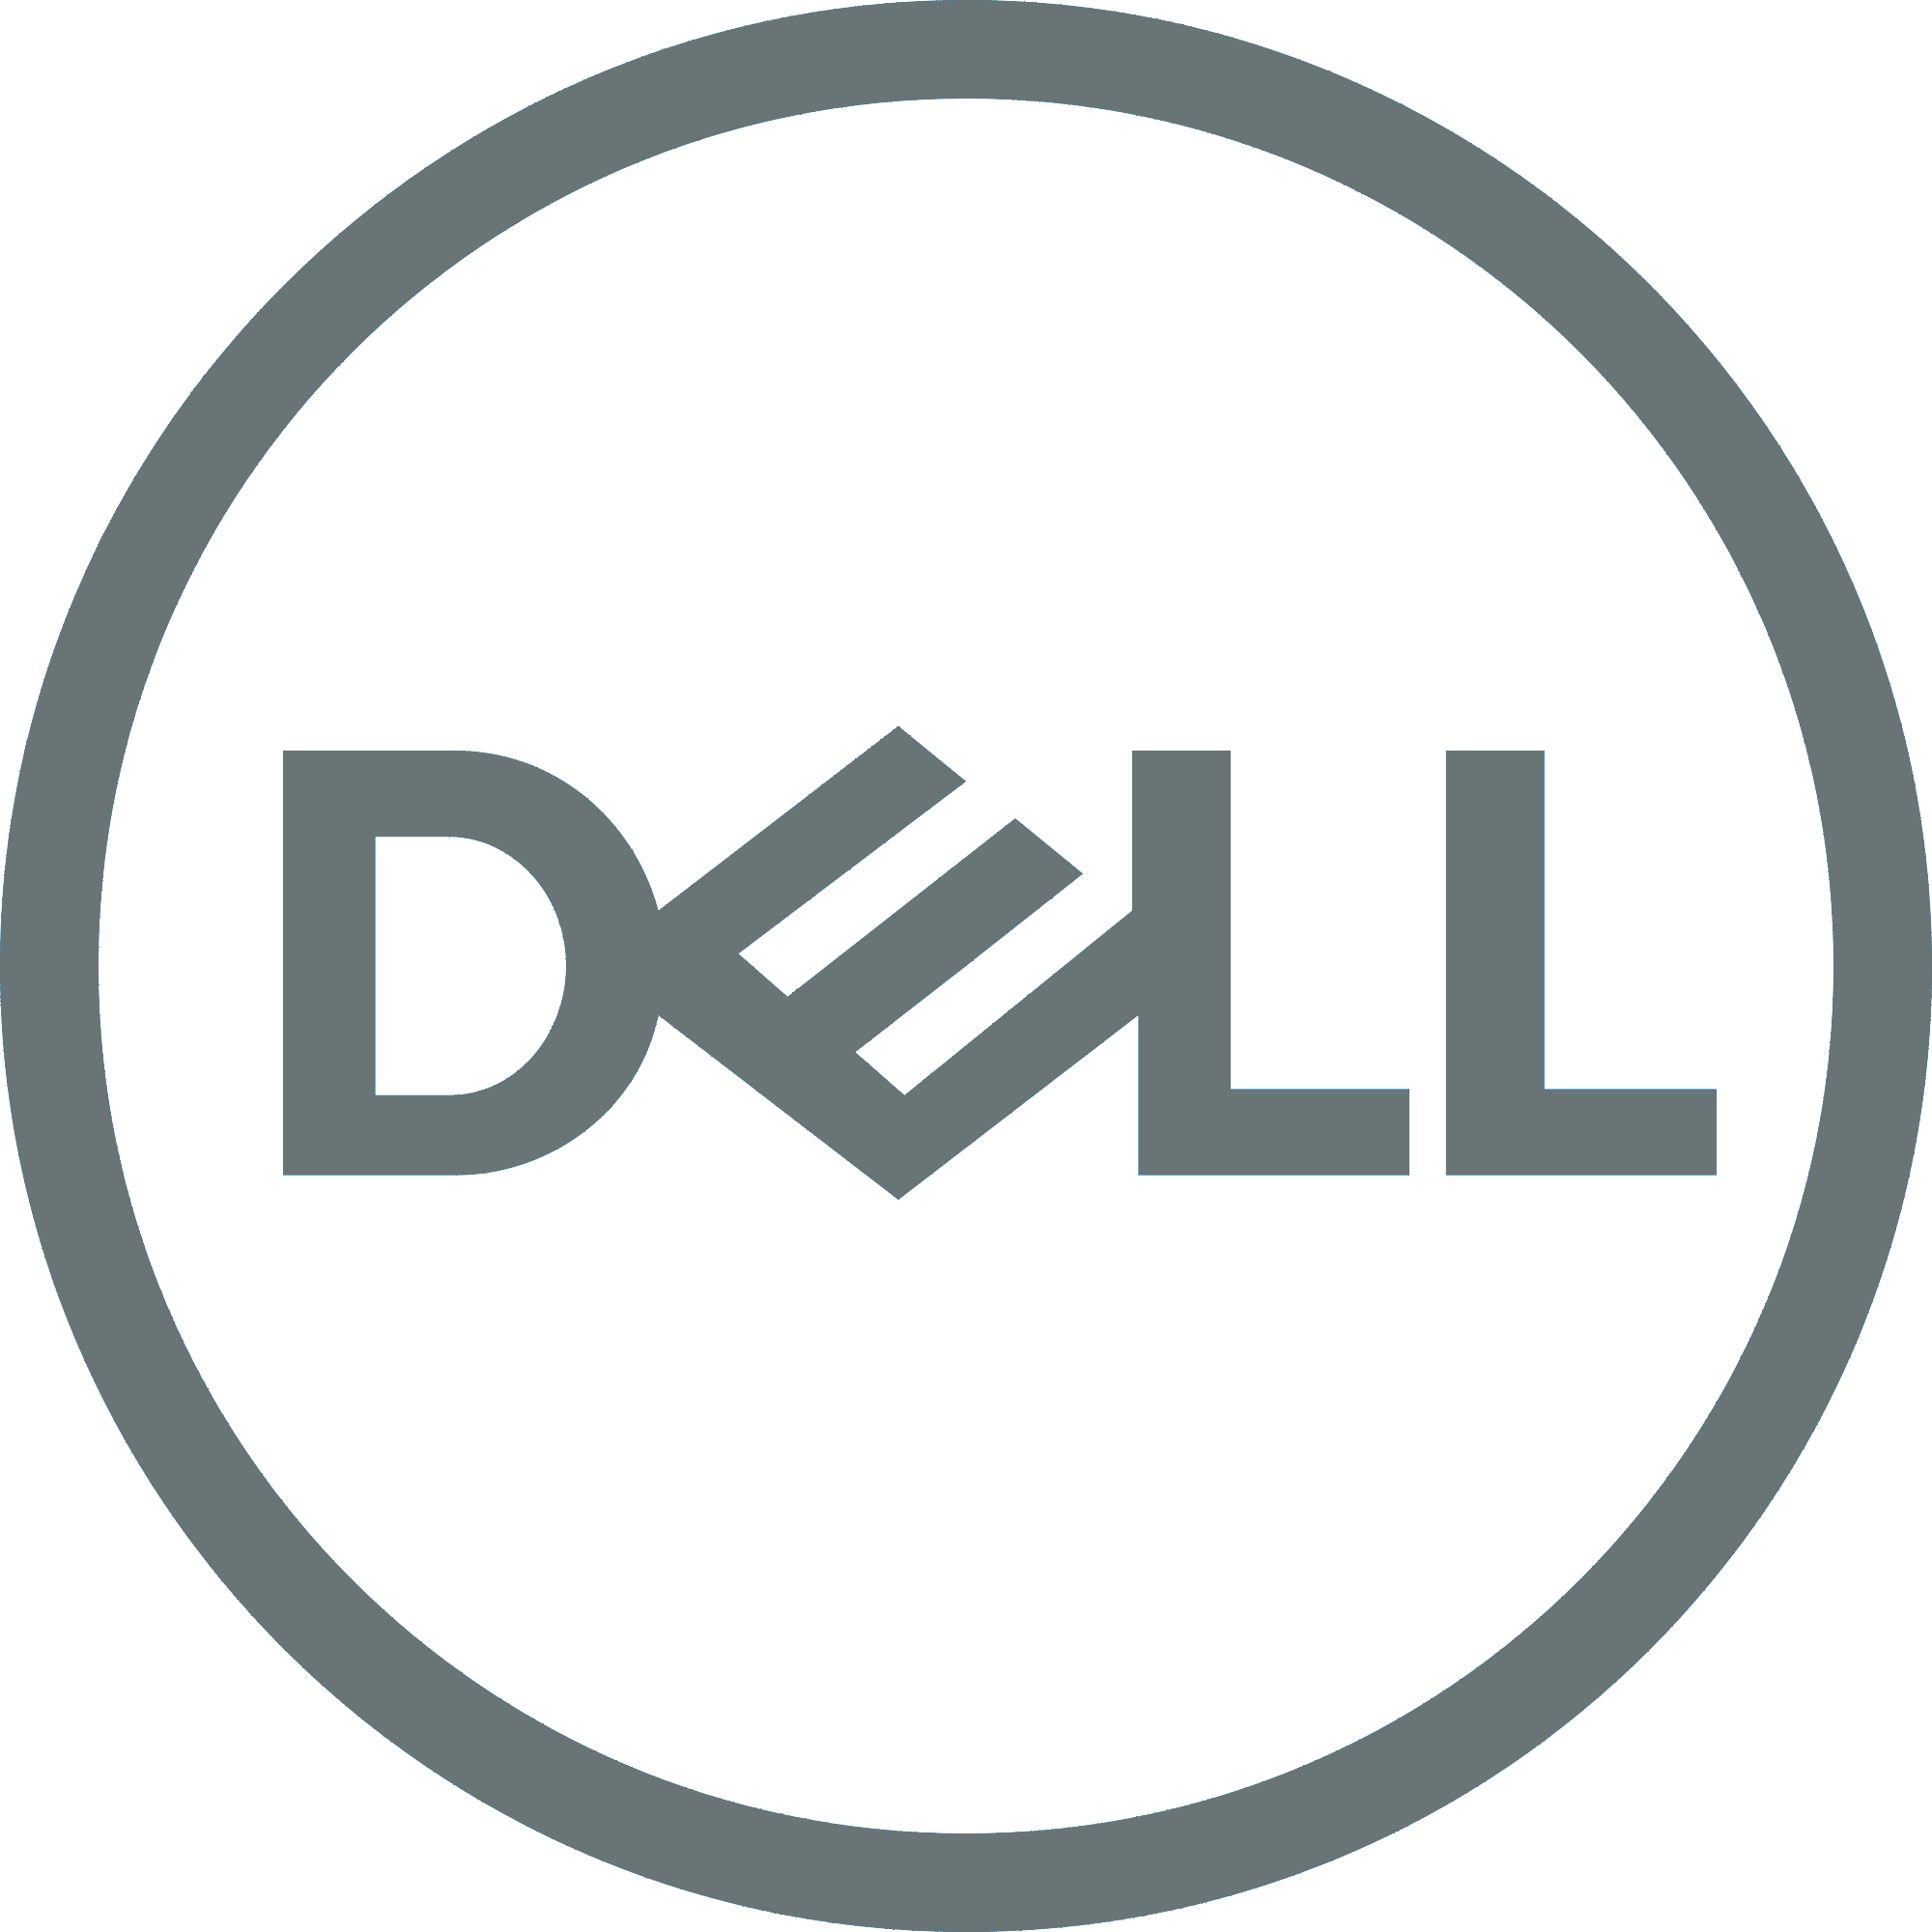 Dell grey logo